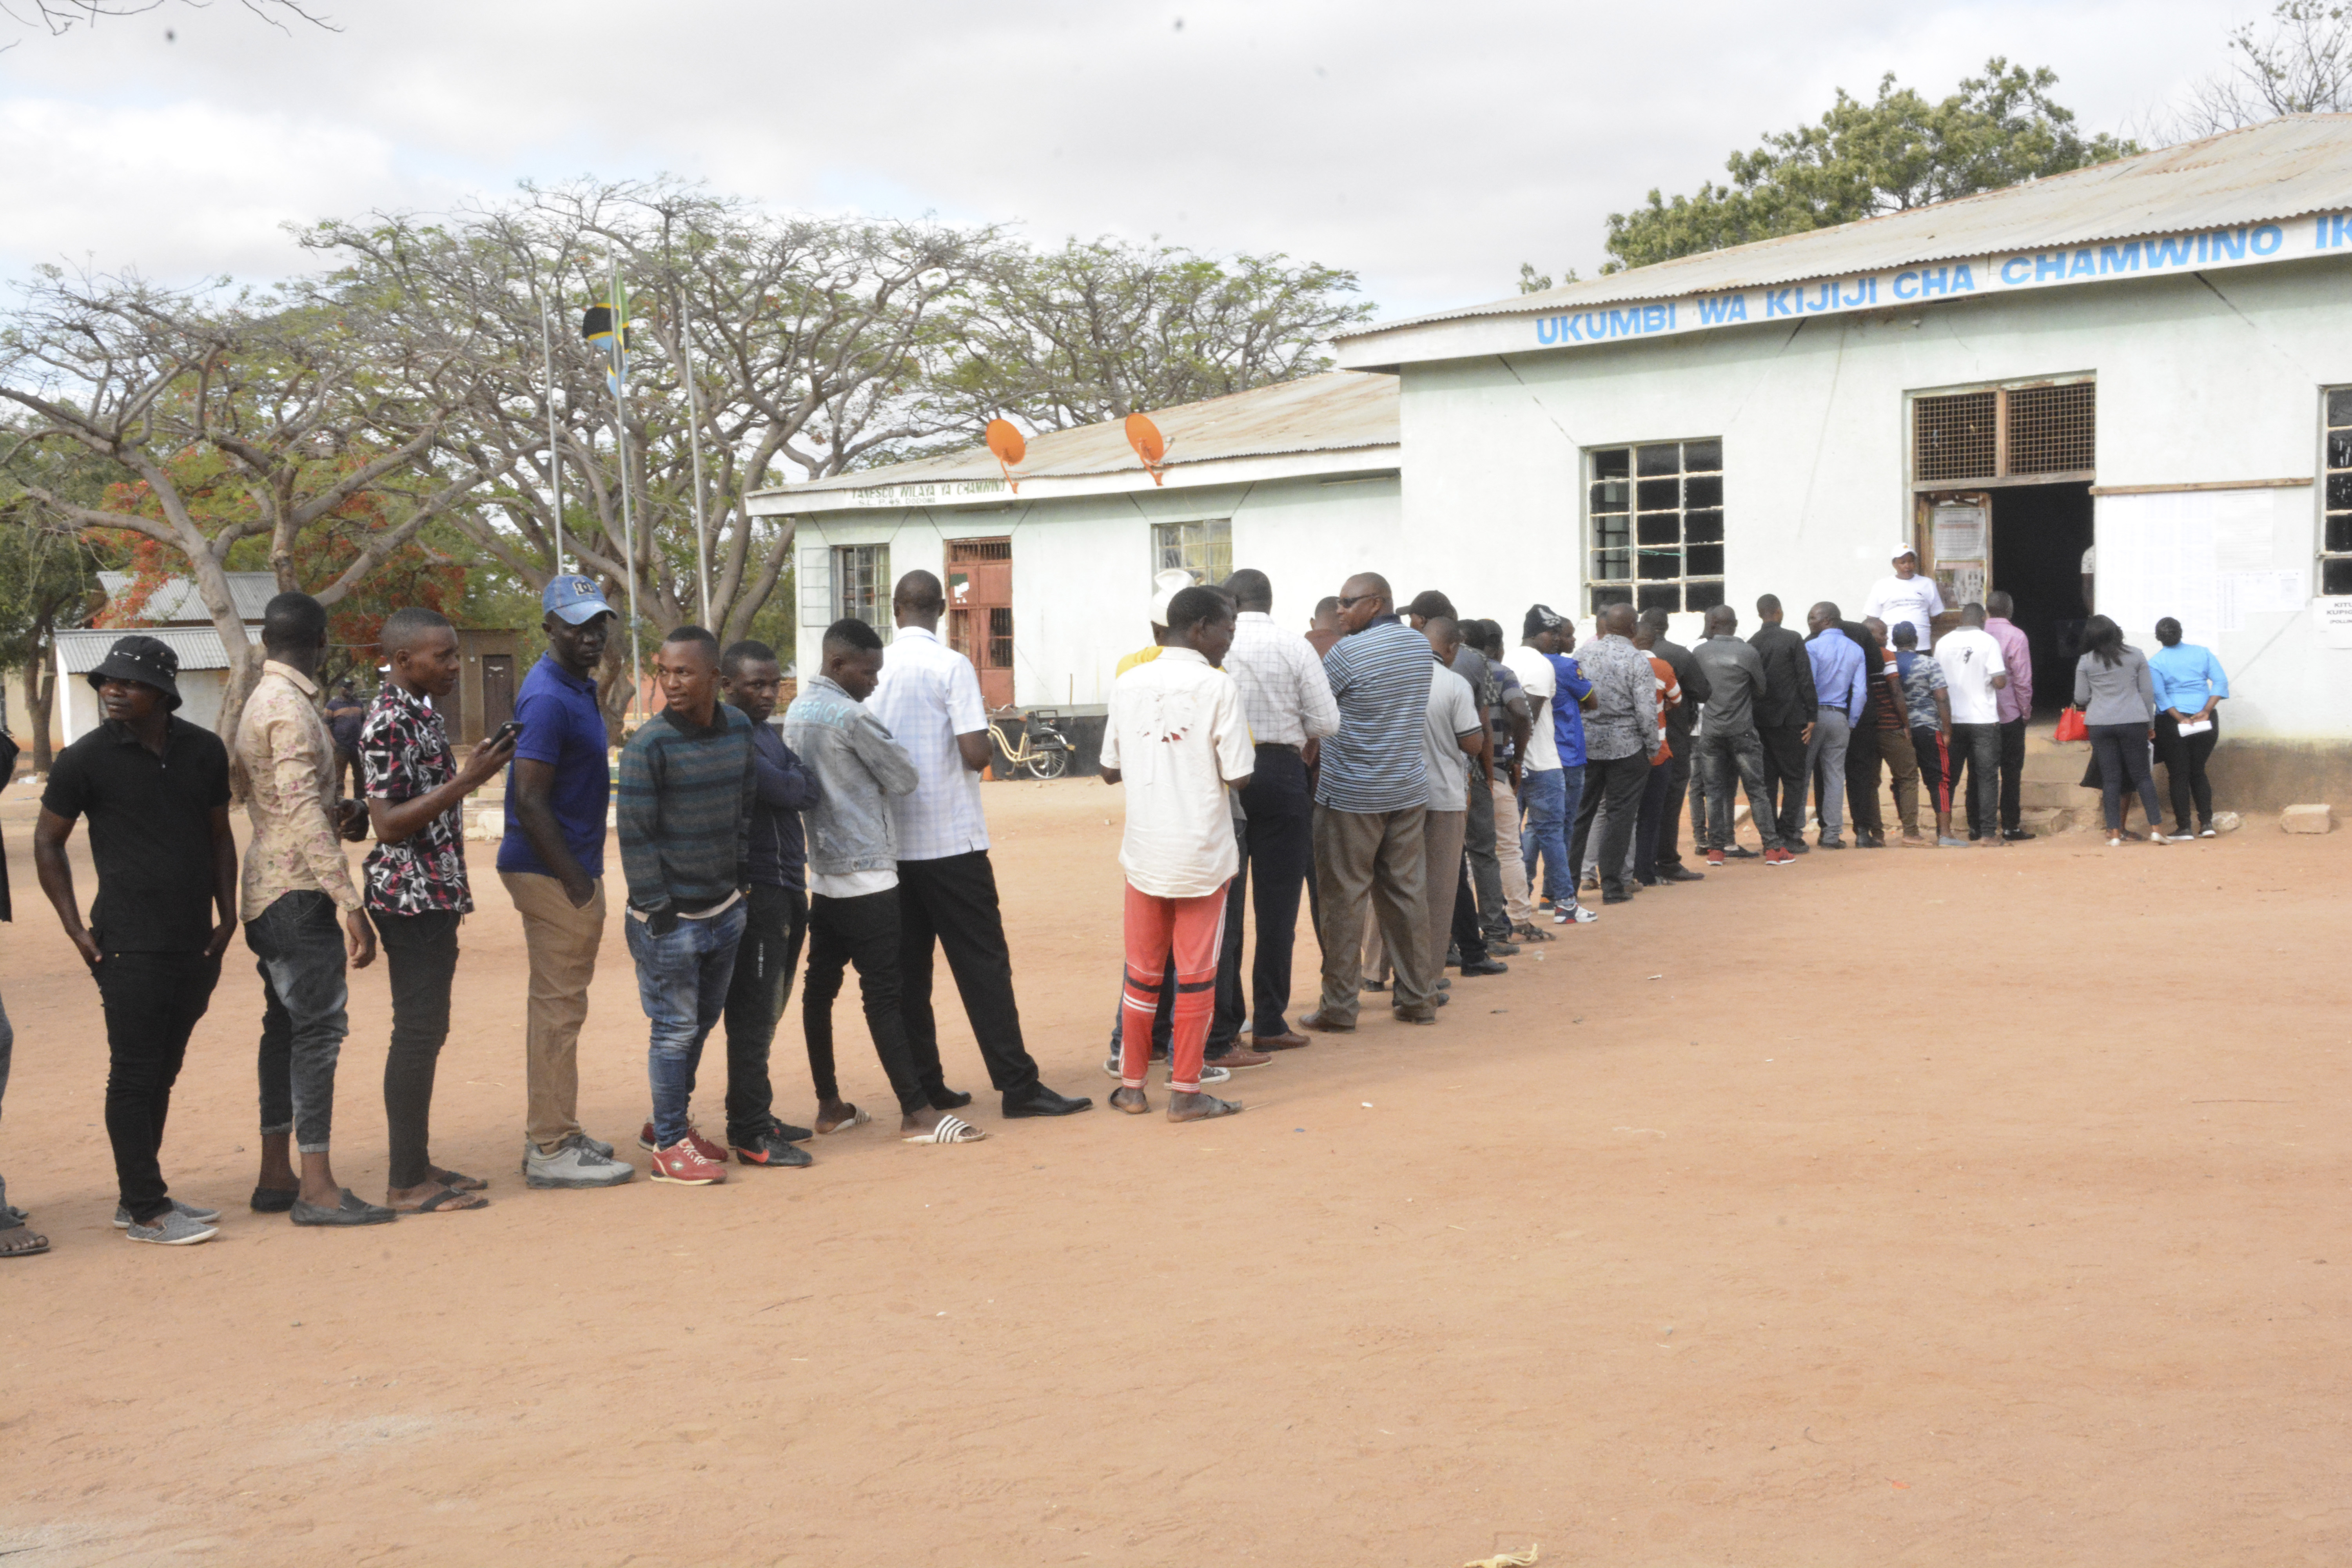 Social media 'restricted' in Tanzania ahead of poll